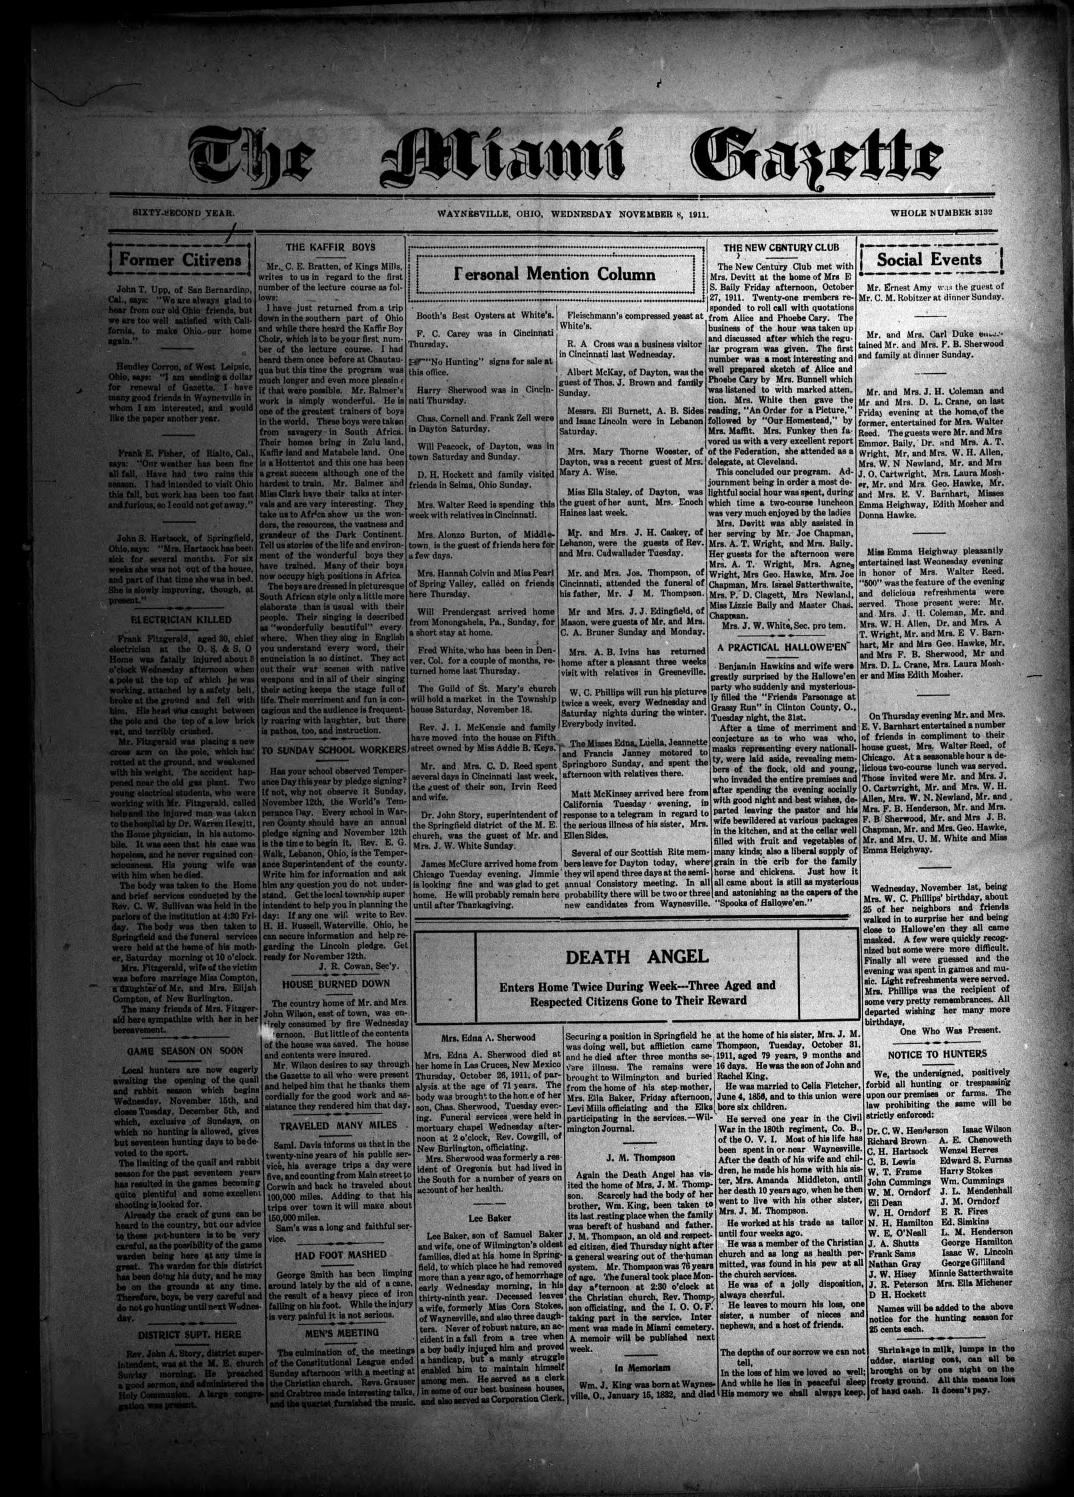 Miami Gazette November 8 1911 May 1 1912 by marylcook